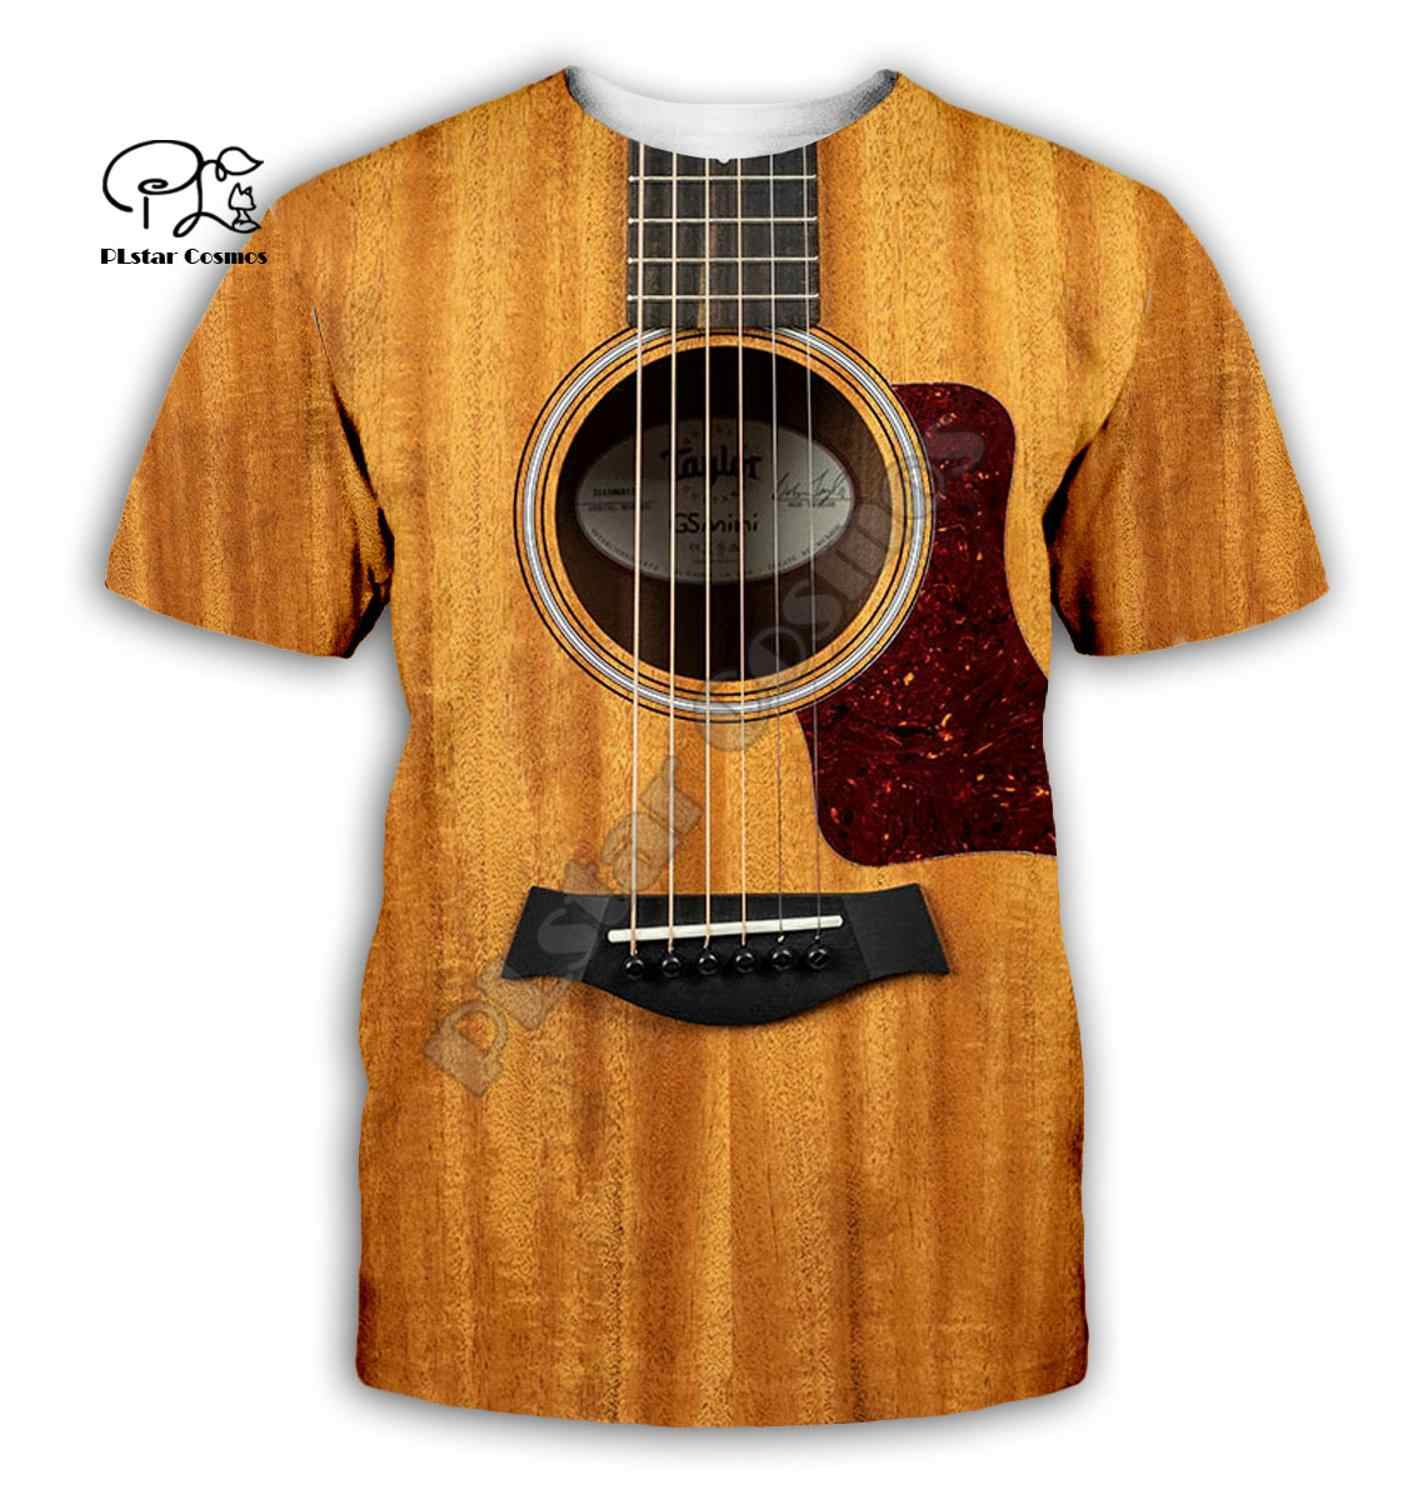 Guitar art Musical instrument 3D full printing fashion t shirt Unisex hip hop style tshirt streetwear casual summer style-1